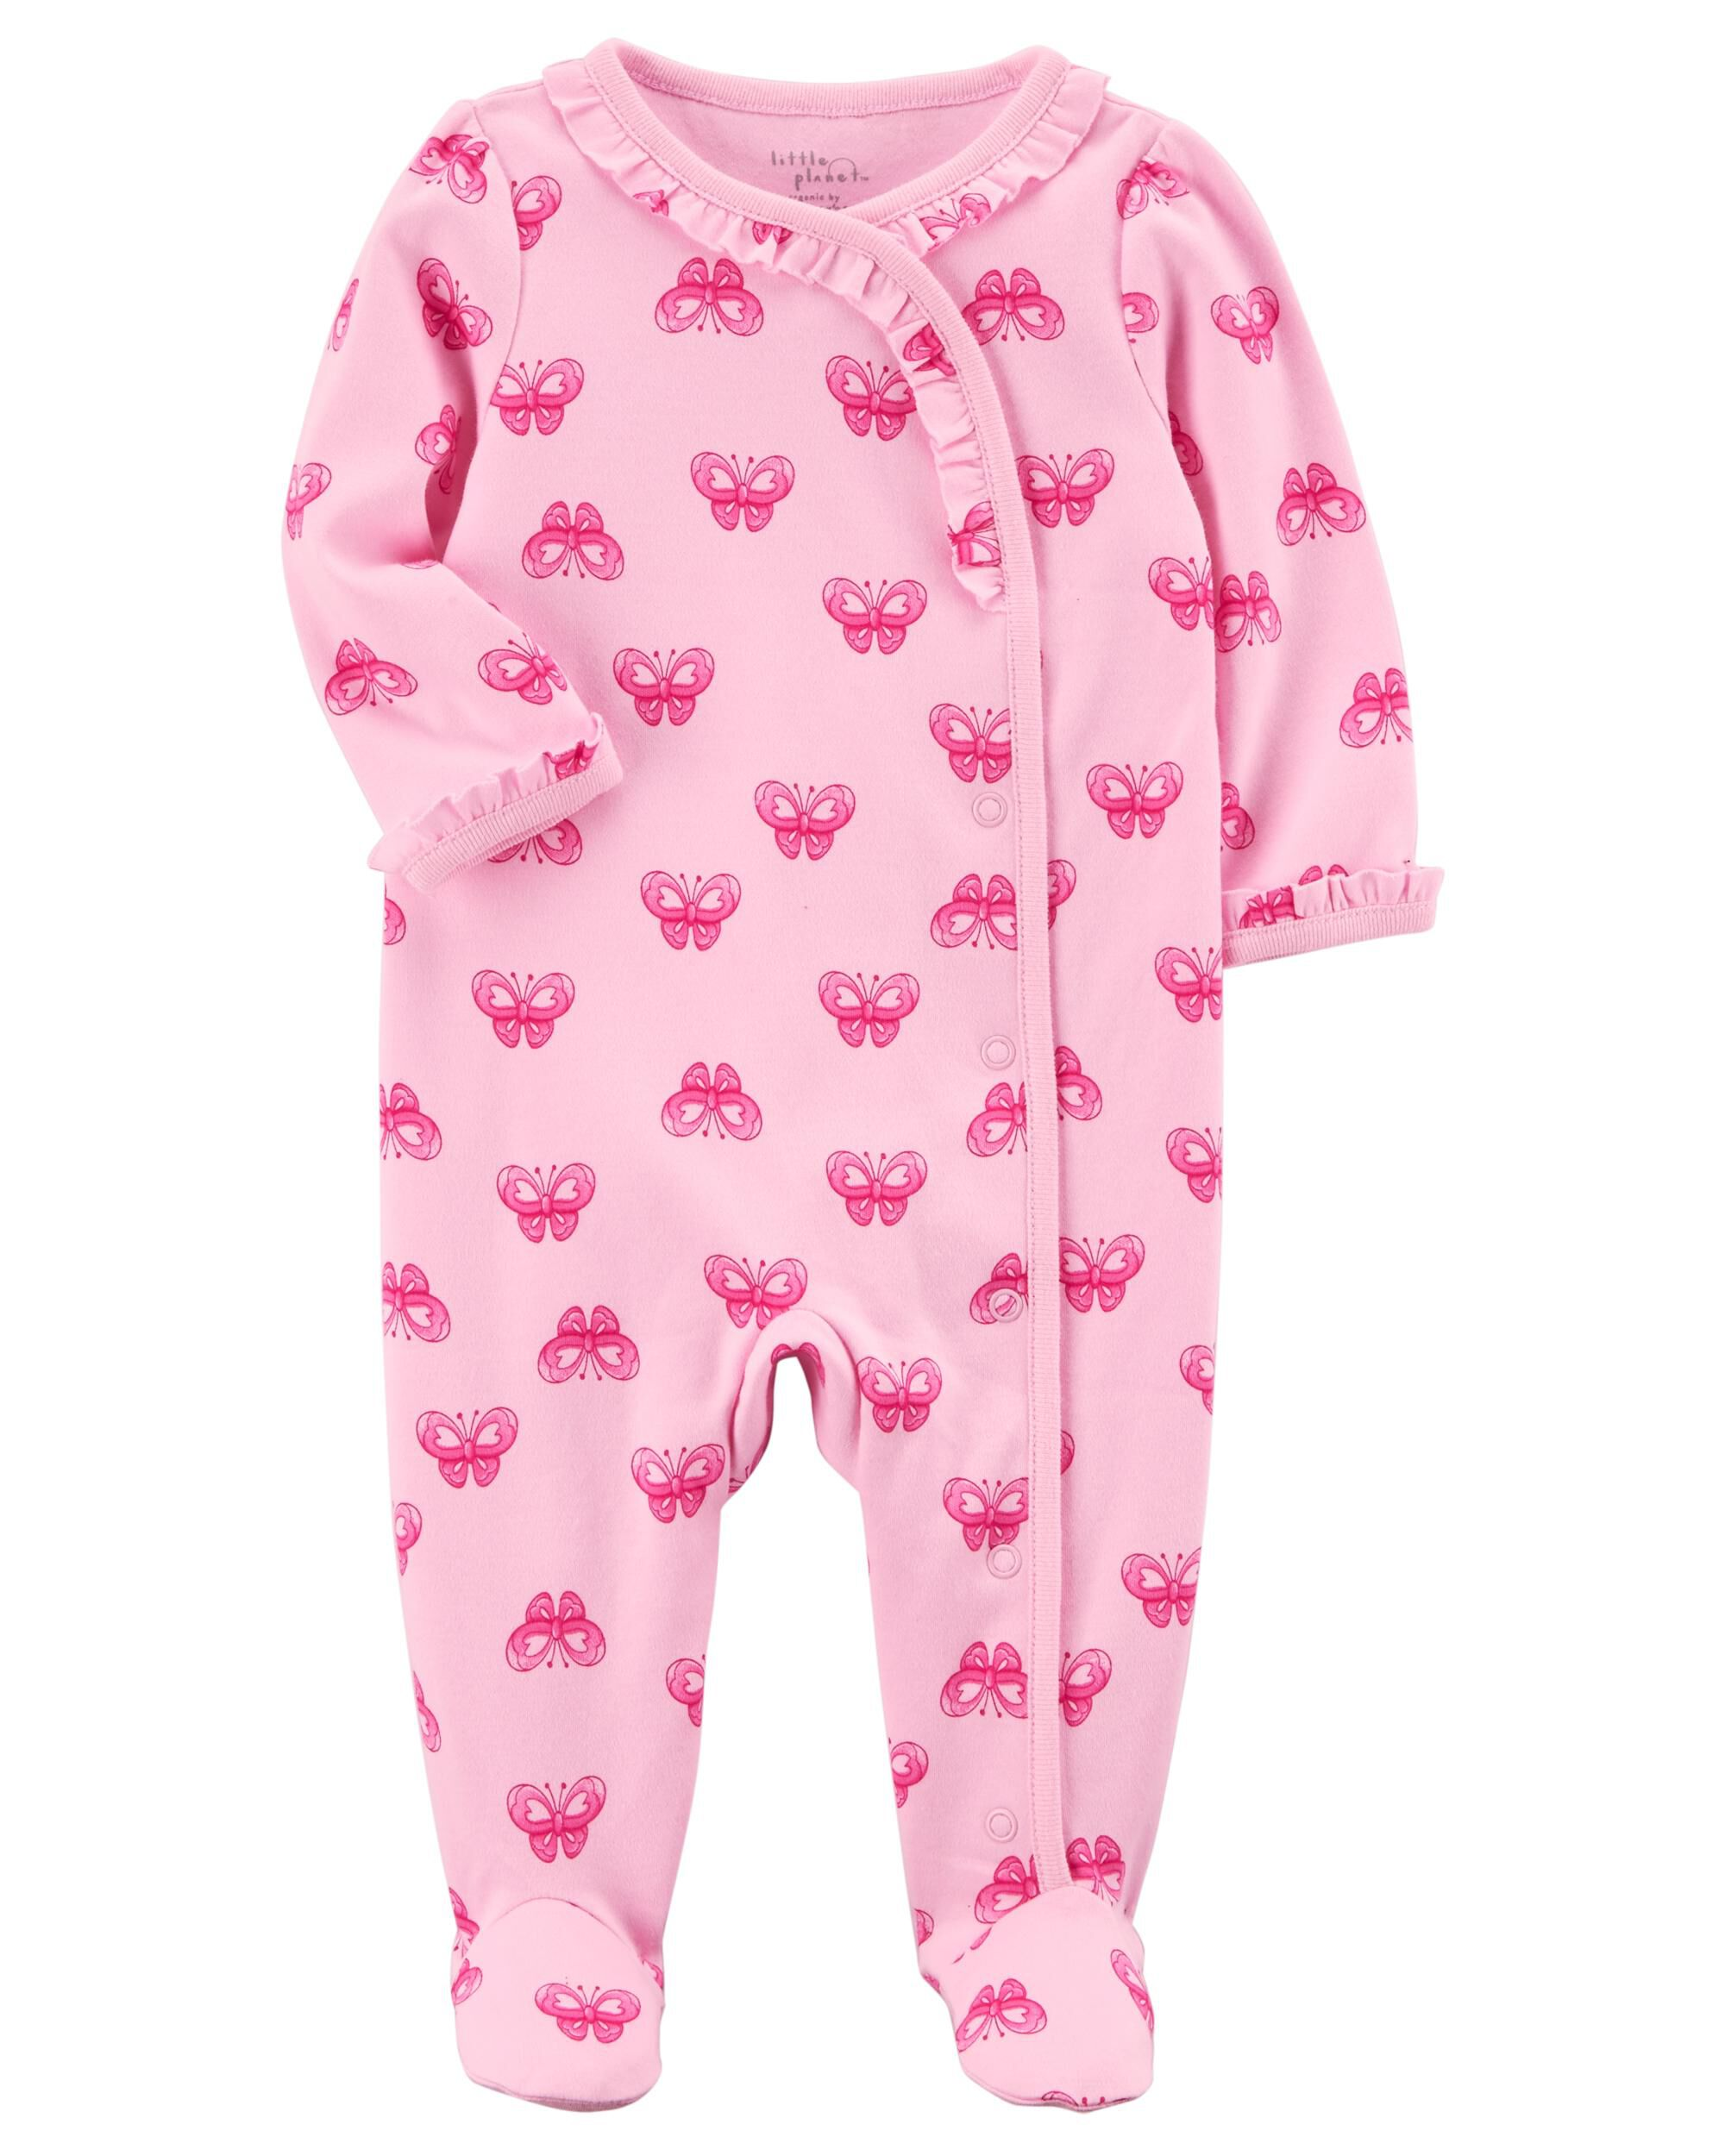 Infant Girls Footed Pink PajamasNew JUST ONE YOU Made by Carter's One-Piece 9M